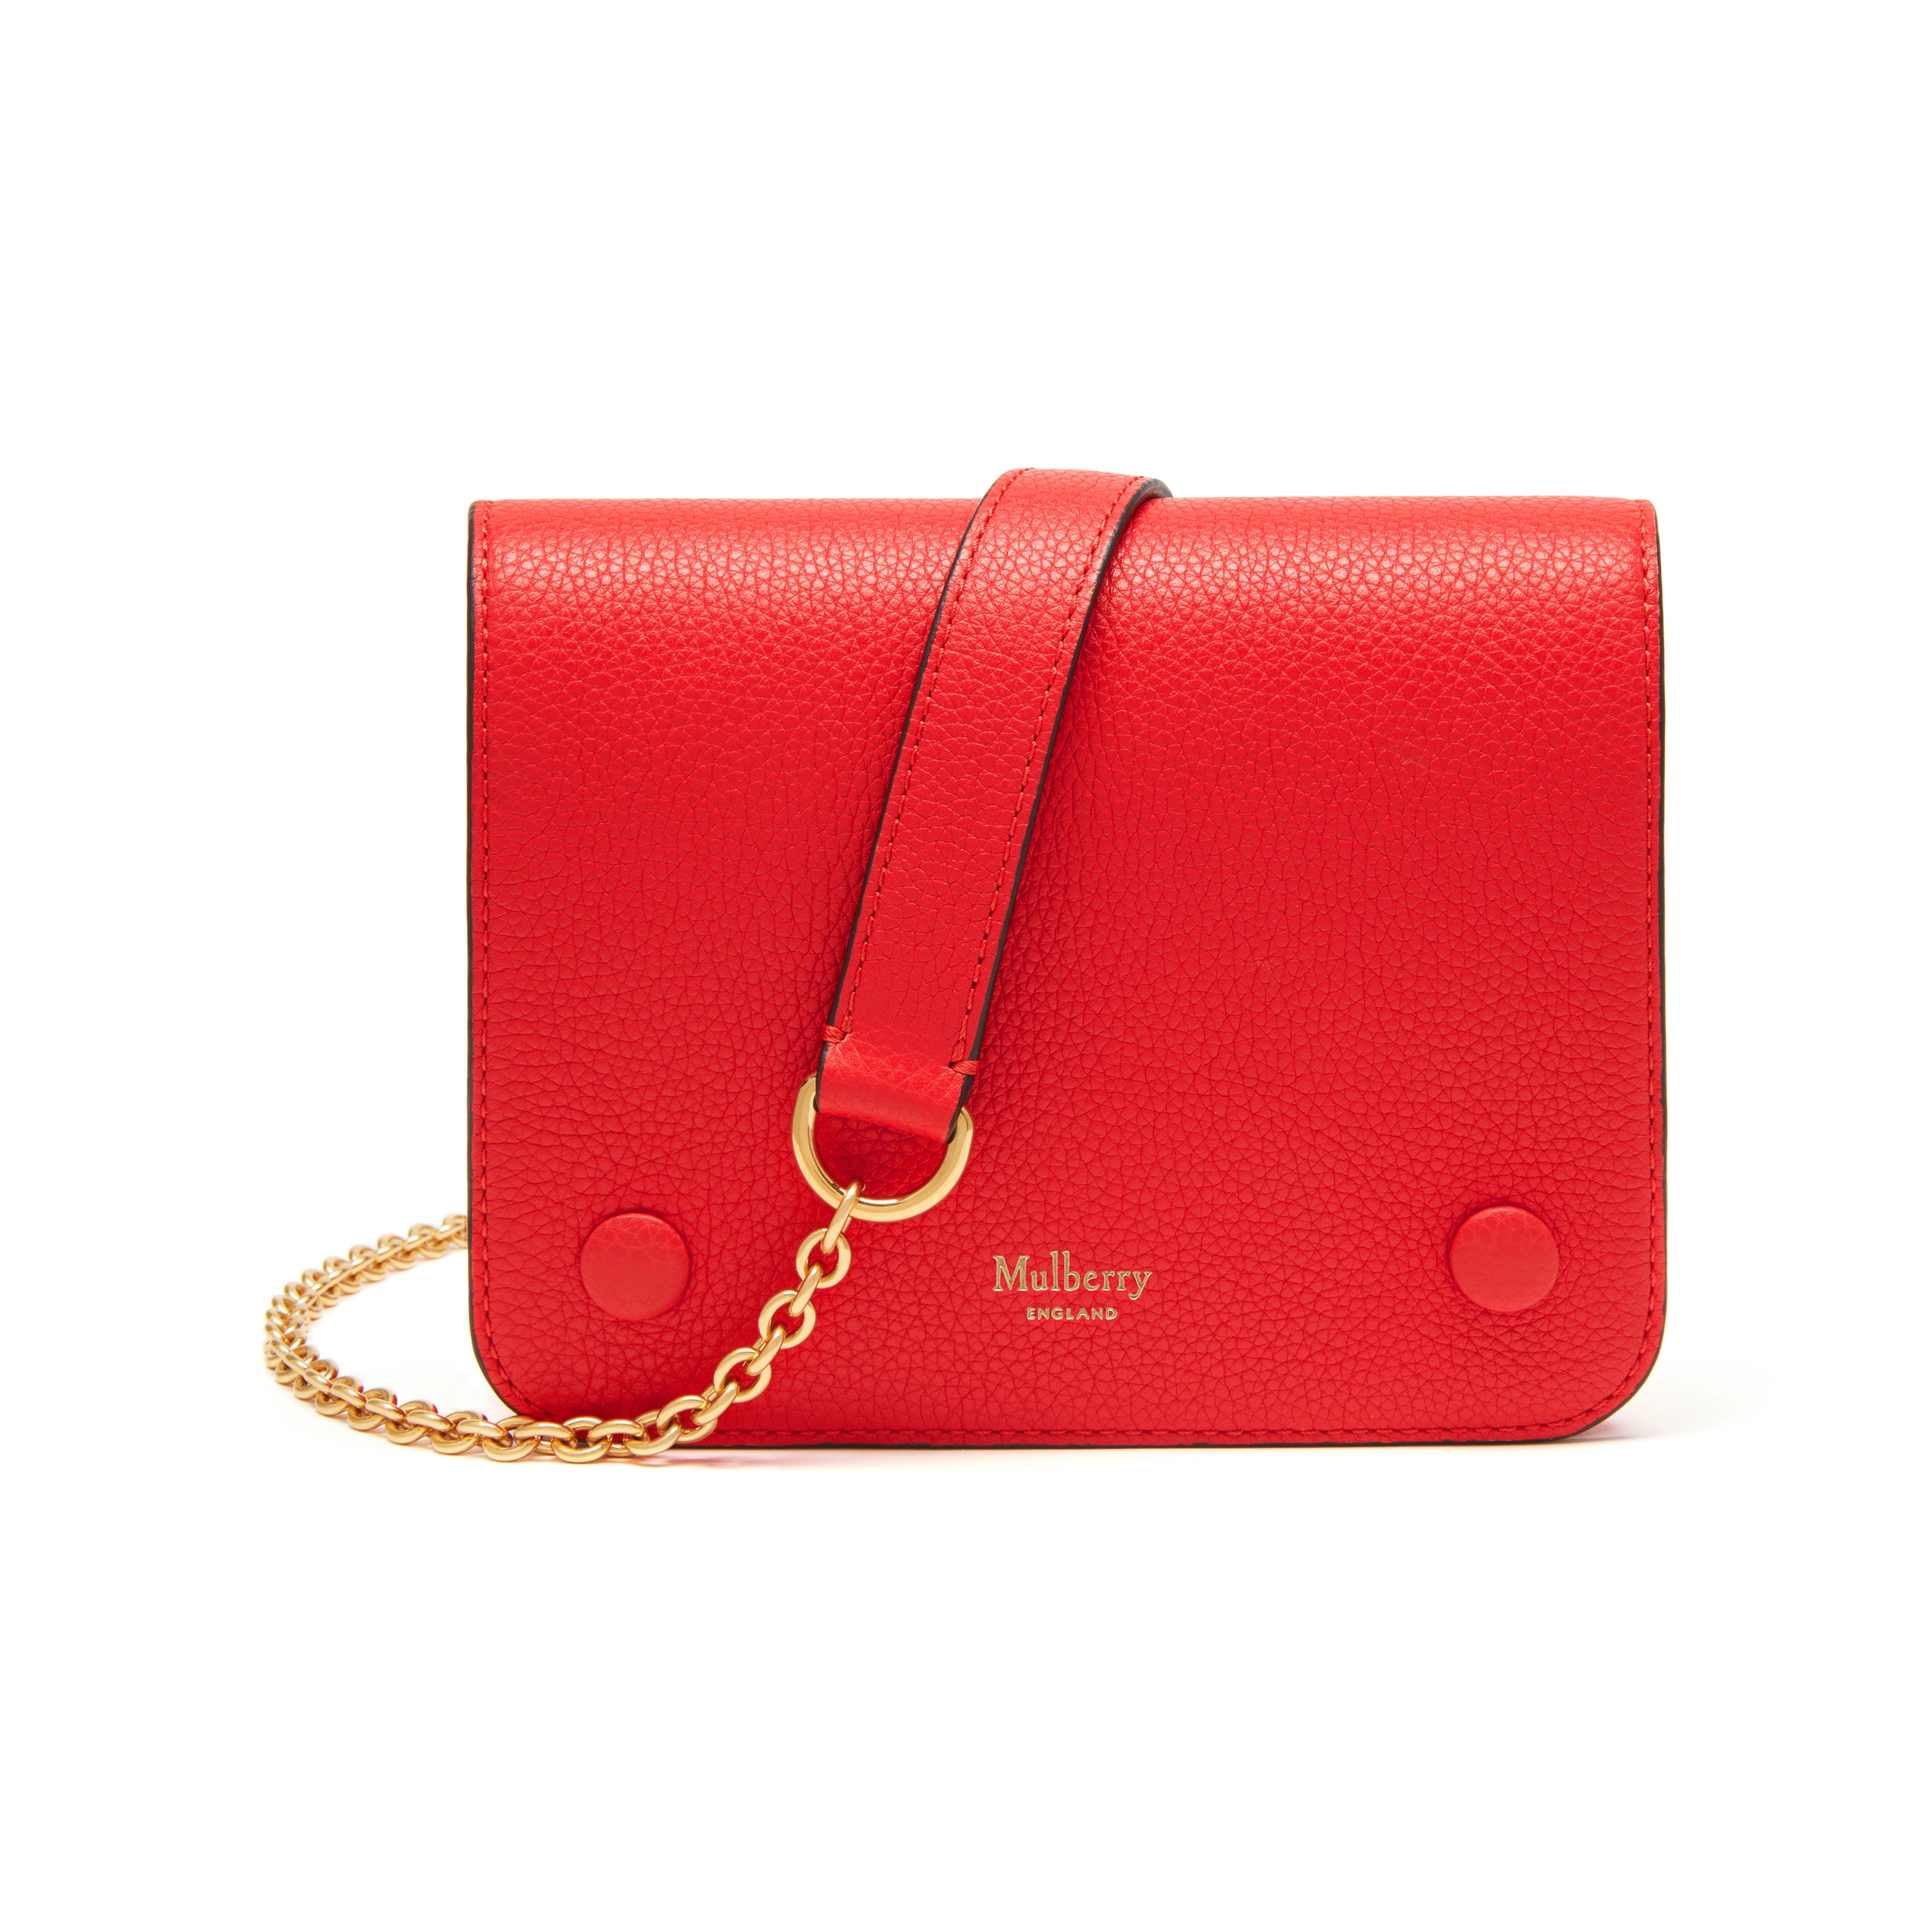 873ad796c7 Shop the Small Clifton in Fiery Red Small Classic Grain Leather at Mulberry.com.  The Small Clifton is a compact